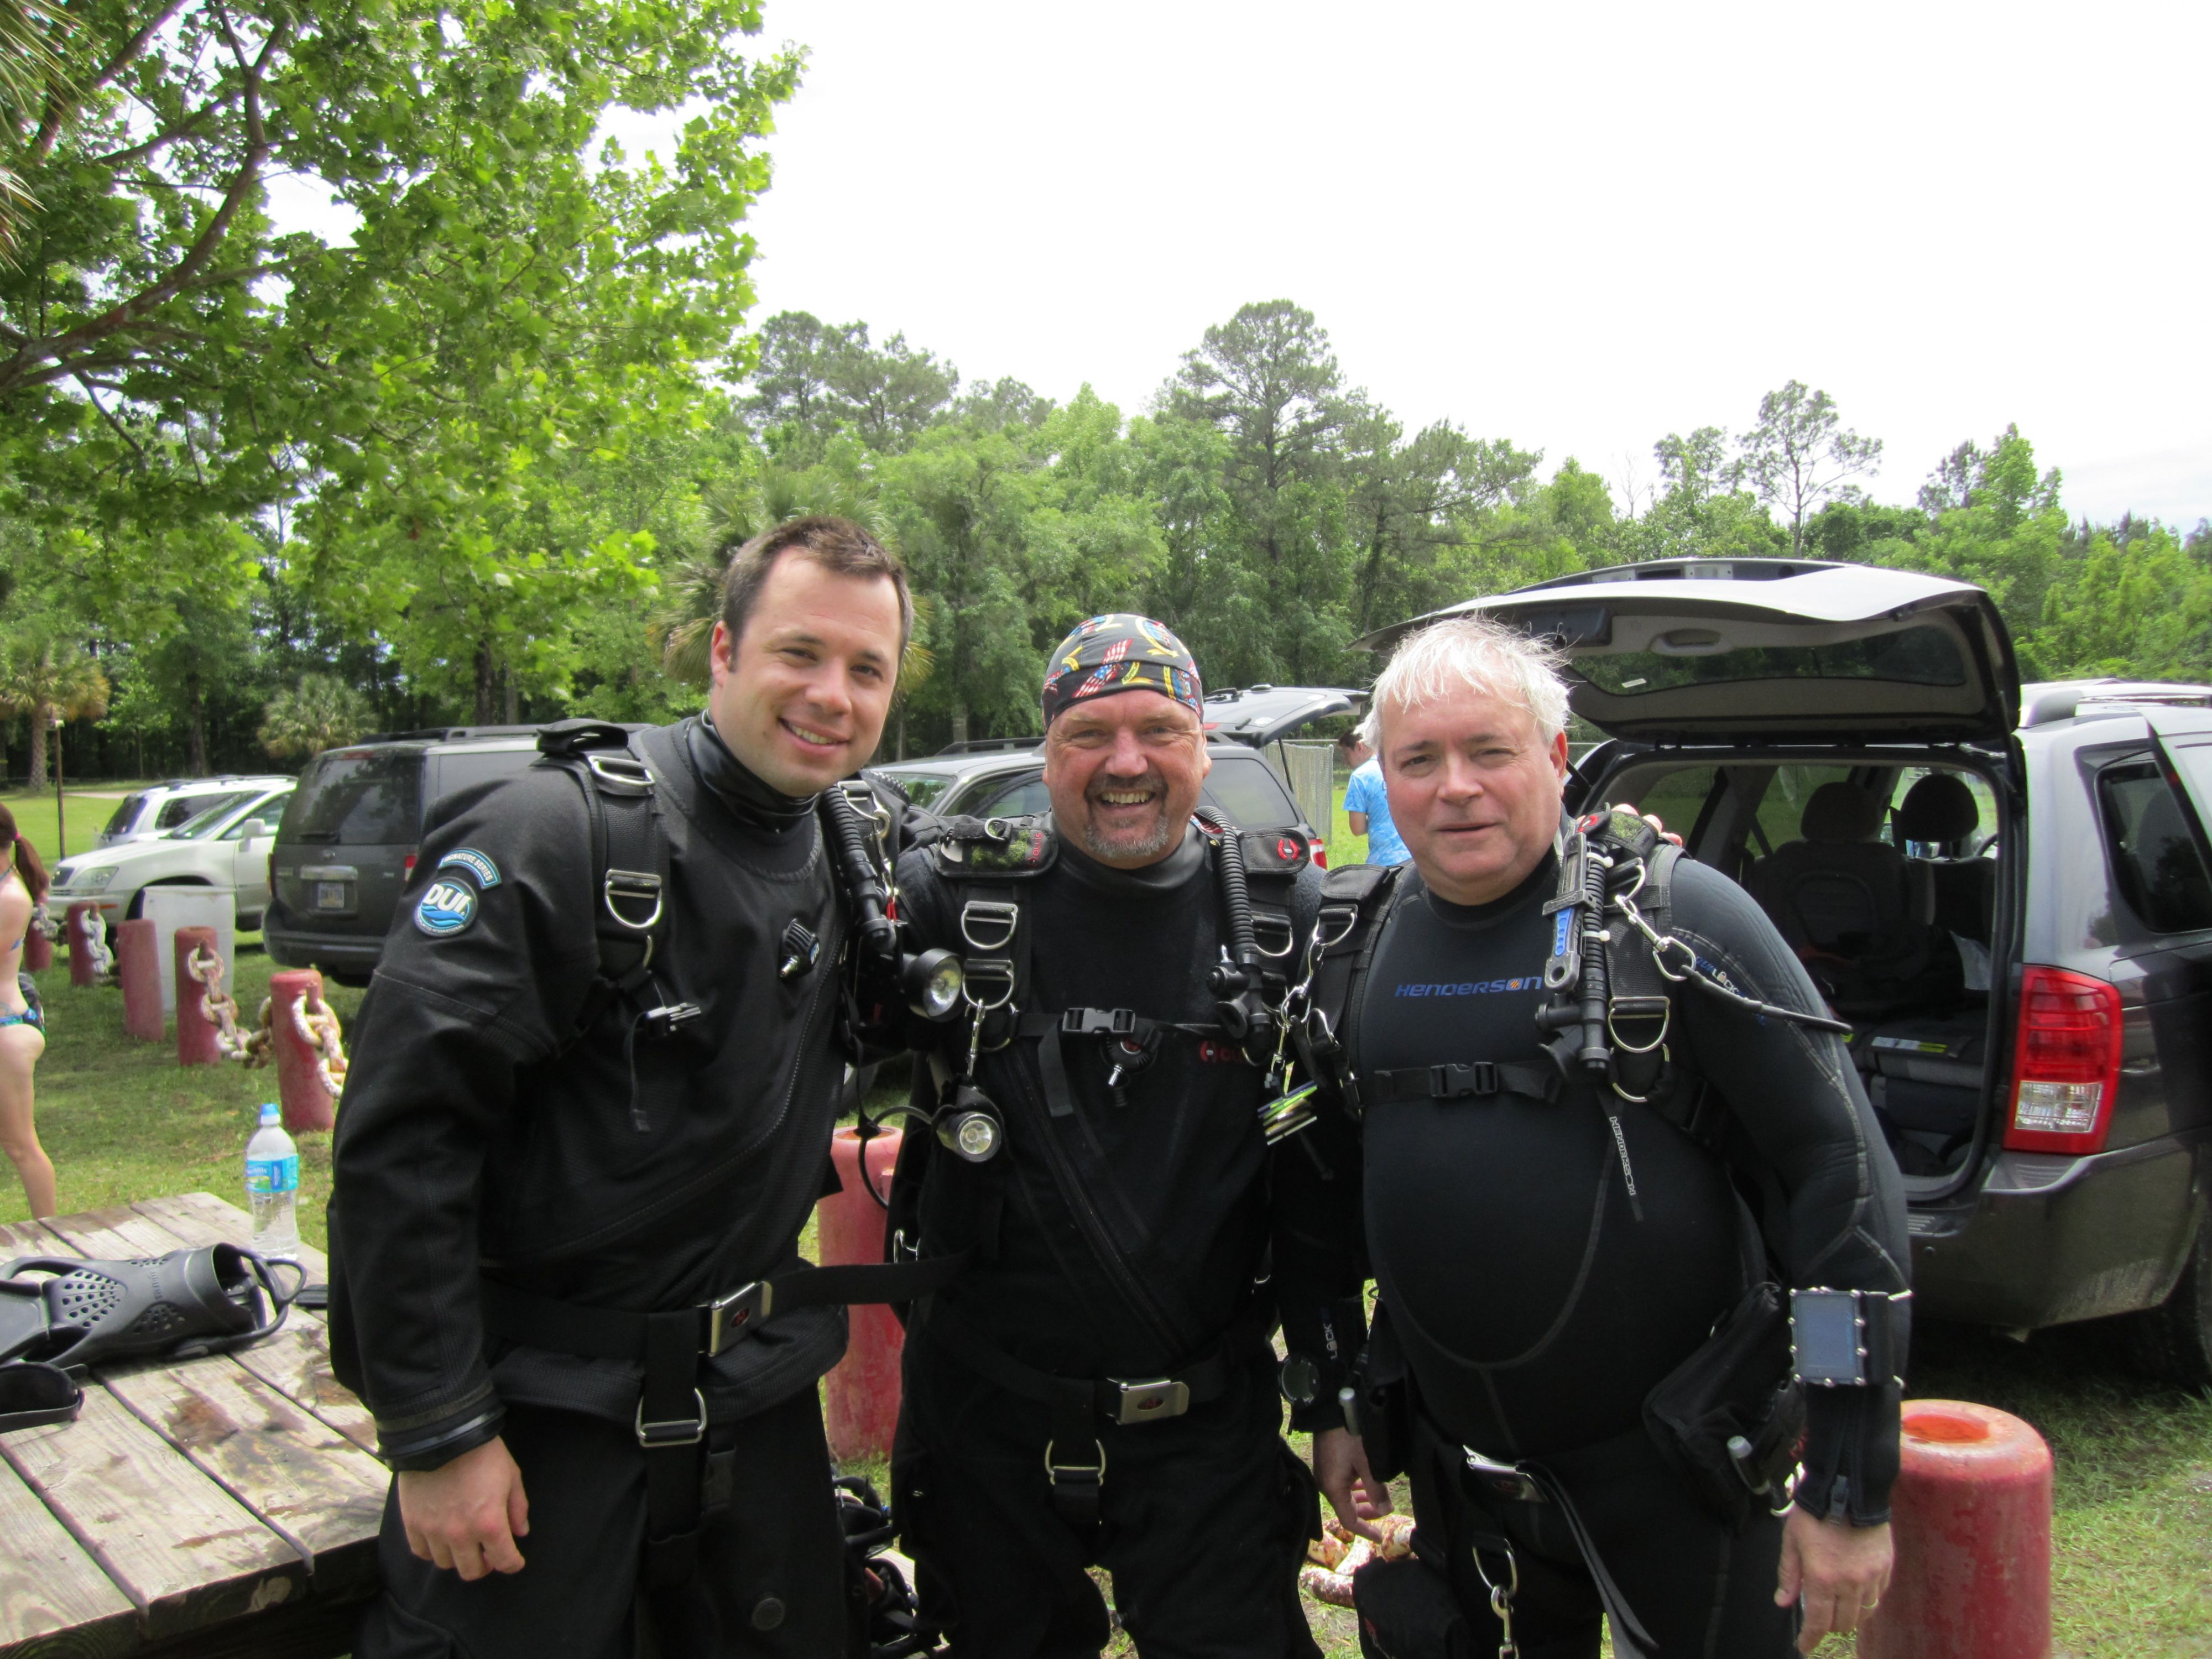 PADI Sidemount diver specialty course with Action Scuba Montreal